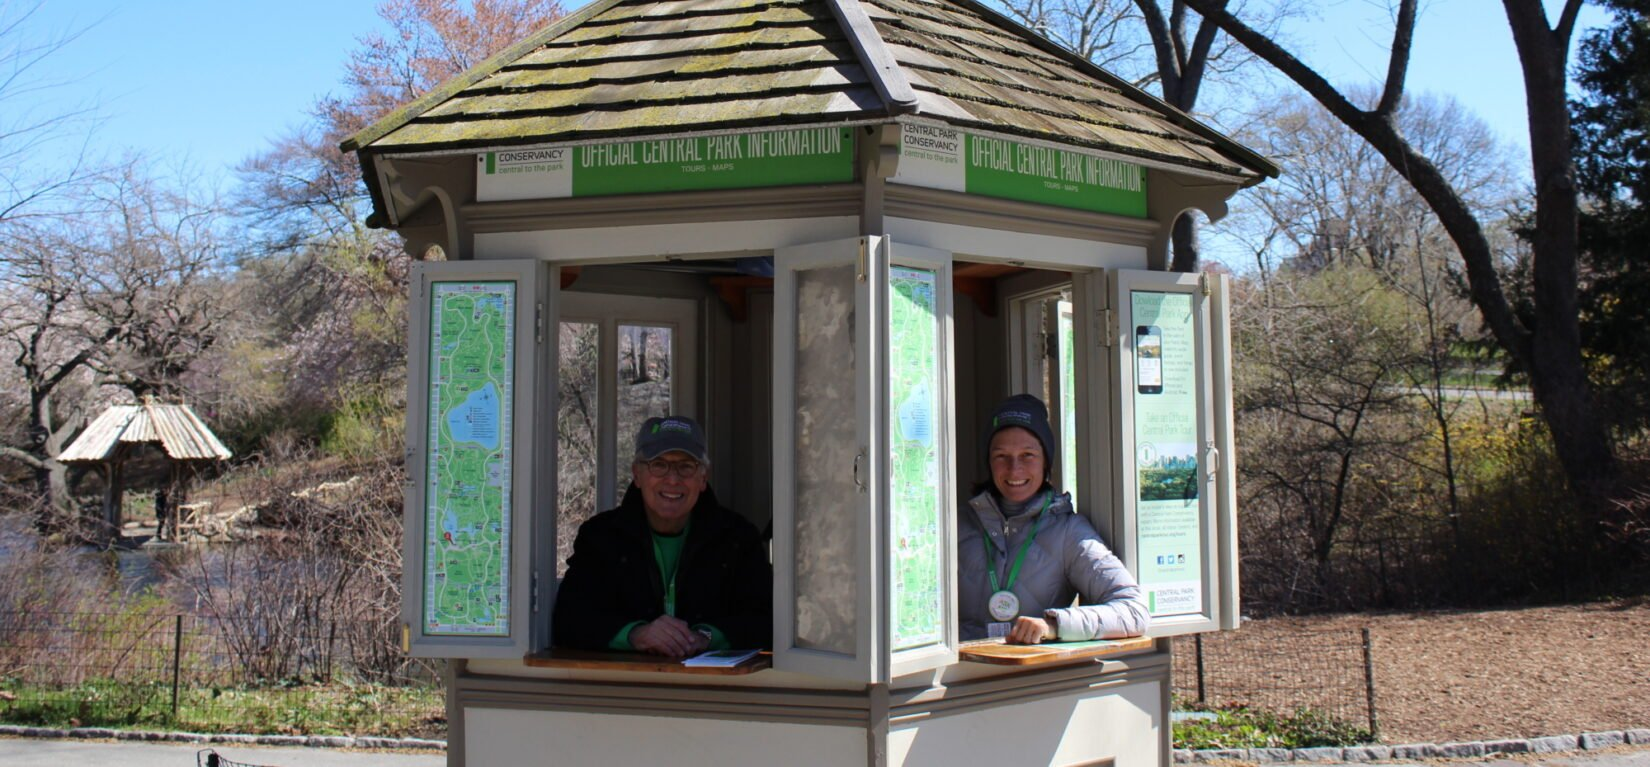 Volunteers are shown manning the 72nd Street Kiosk